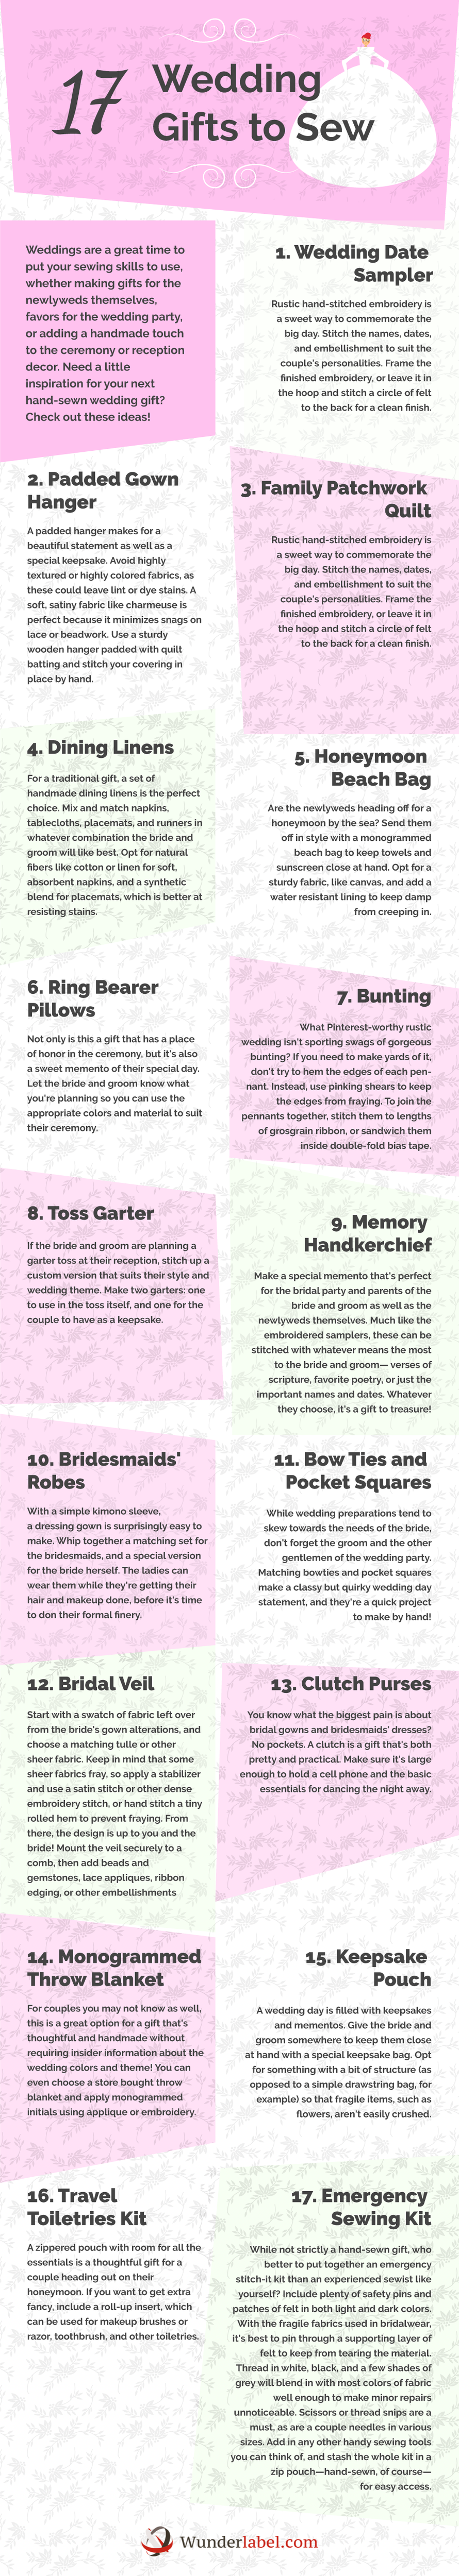 17 Wedding Gifts to Sew [Infographic]